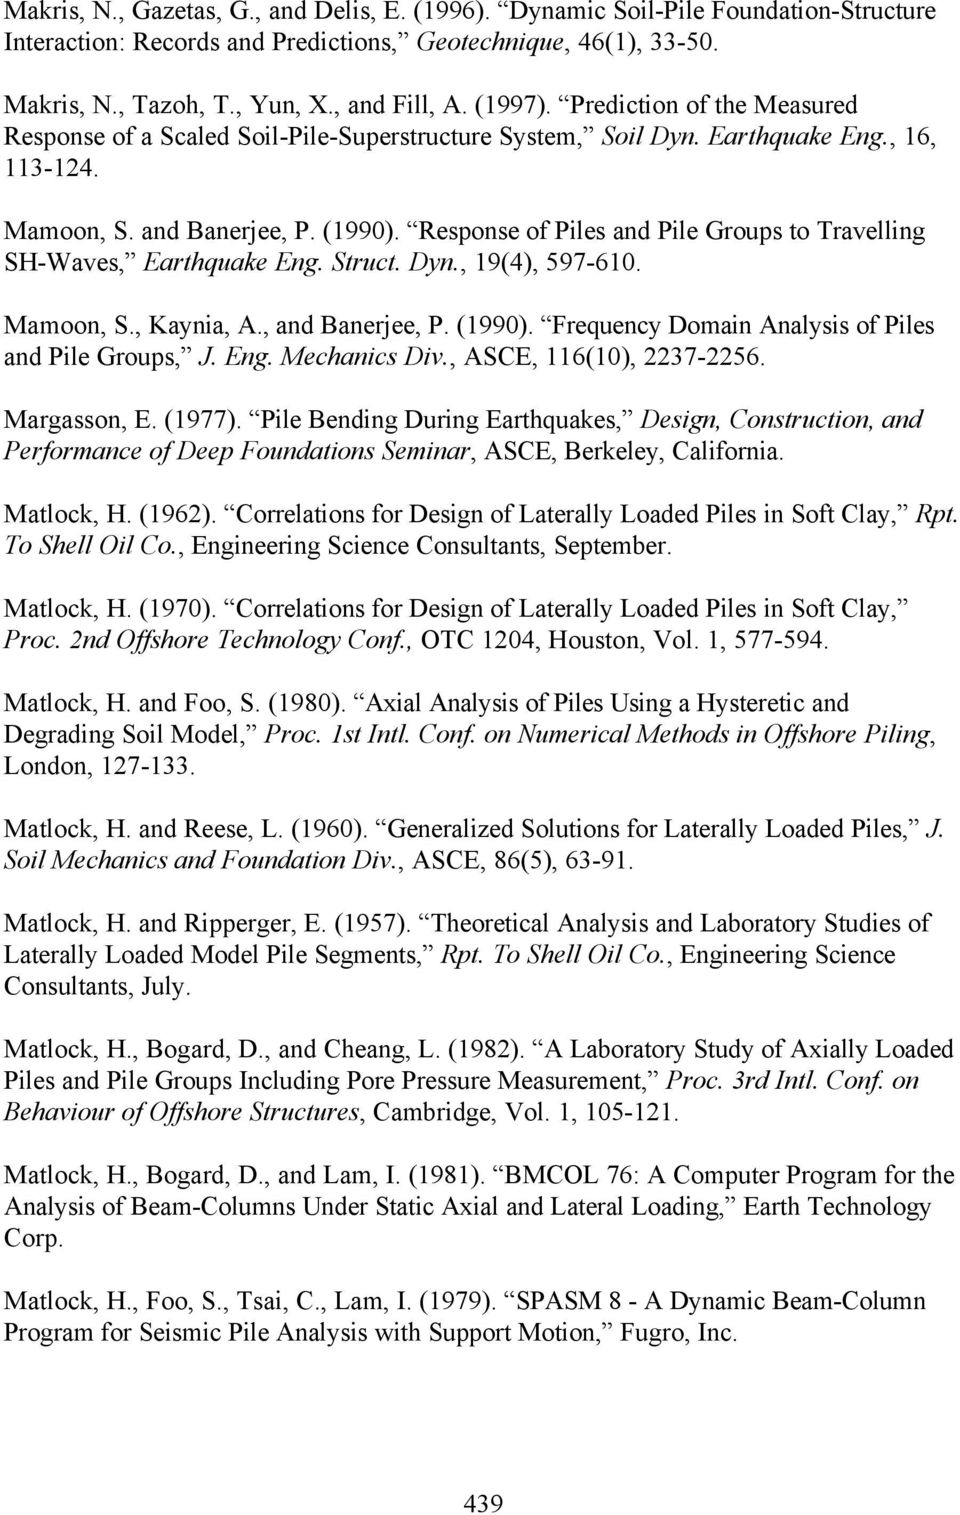 Response of Piles and Pile Groups to Travelling SH-Waves, Earthquake Eng. Struct. Dyn., 19(4), 597-610. Mamoon, S., Kaynia, A., and Banerjee, P. (1990).